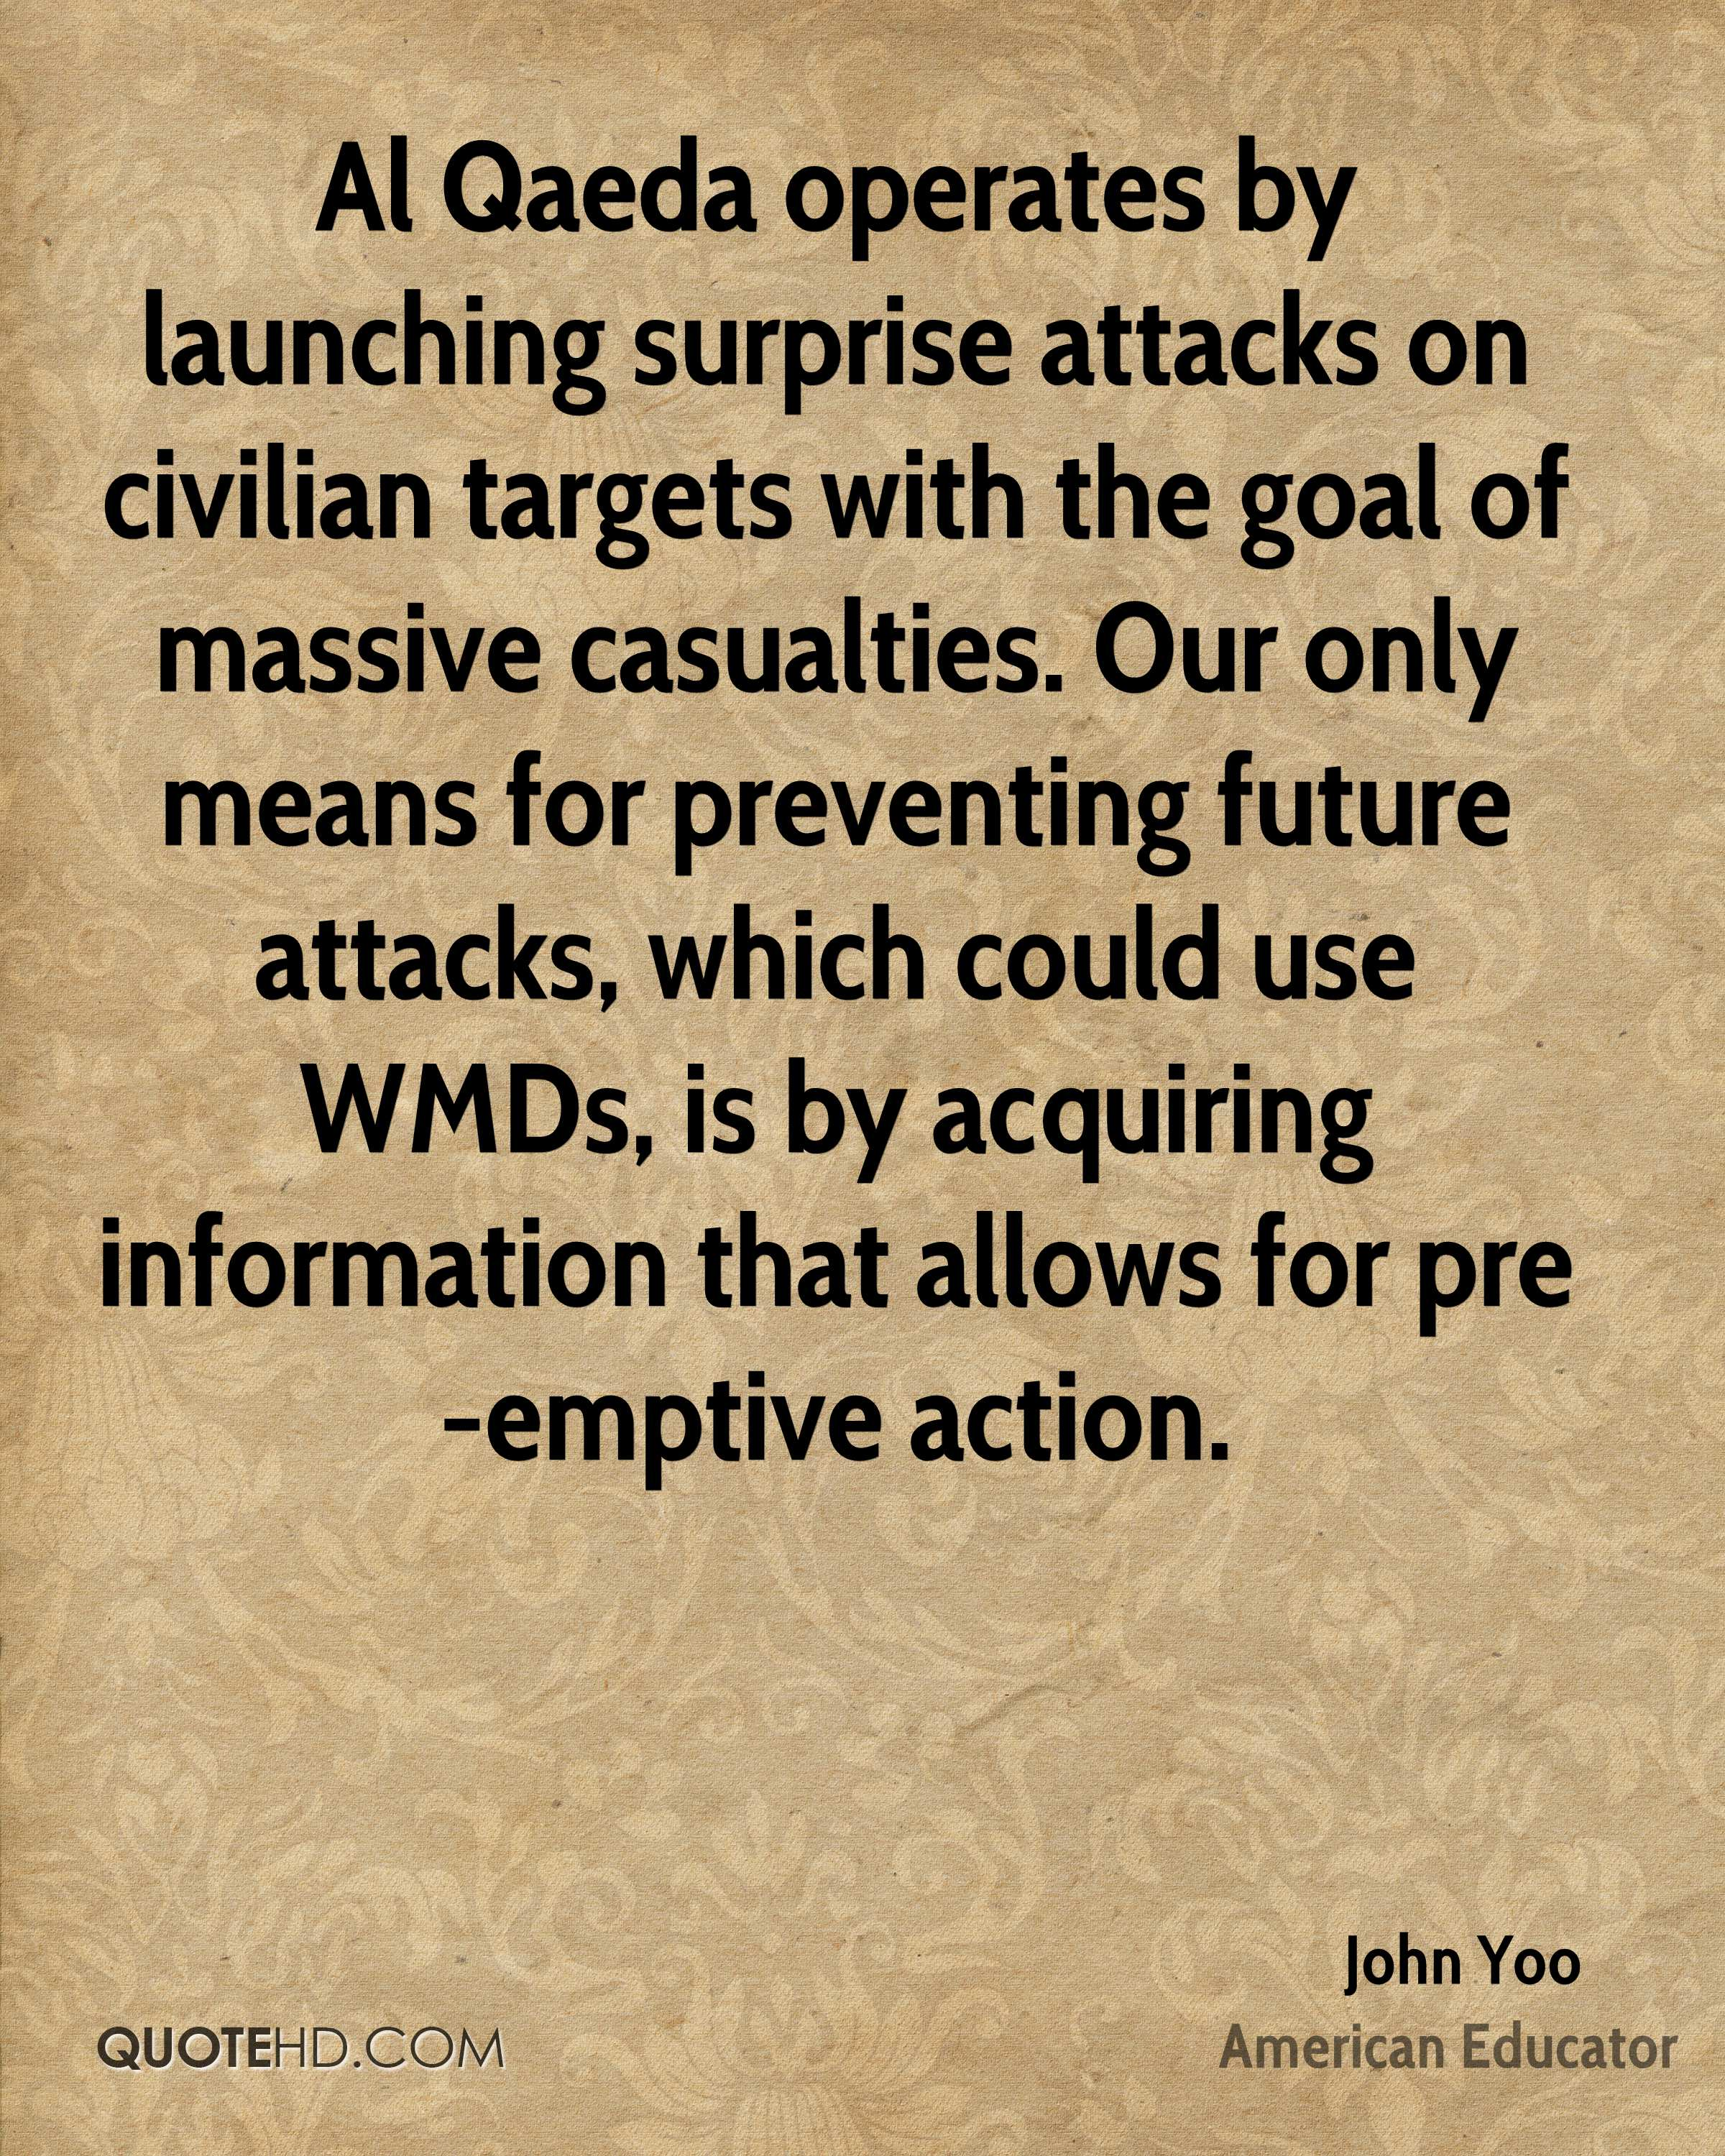 Al Qaeda operates by launching surprise attacks on civilian targets with the goal of massive casualties. Our only means for preventing future attacks, which could use WMDs, is by acquiring information that allows for pre-emptive action.